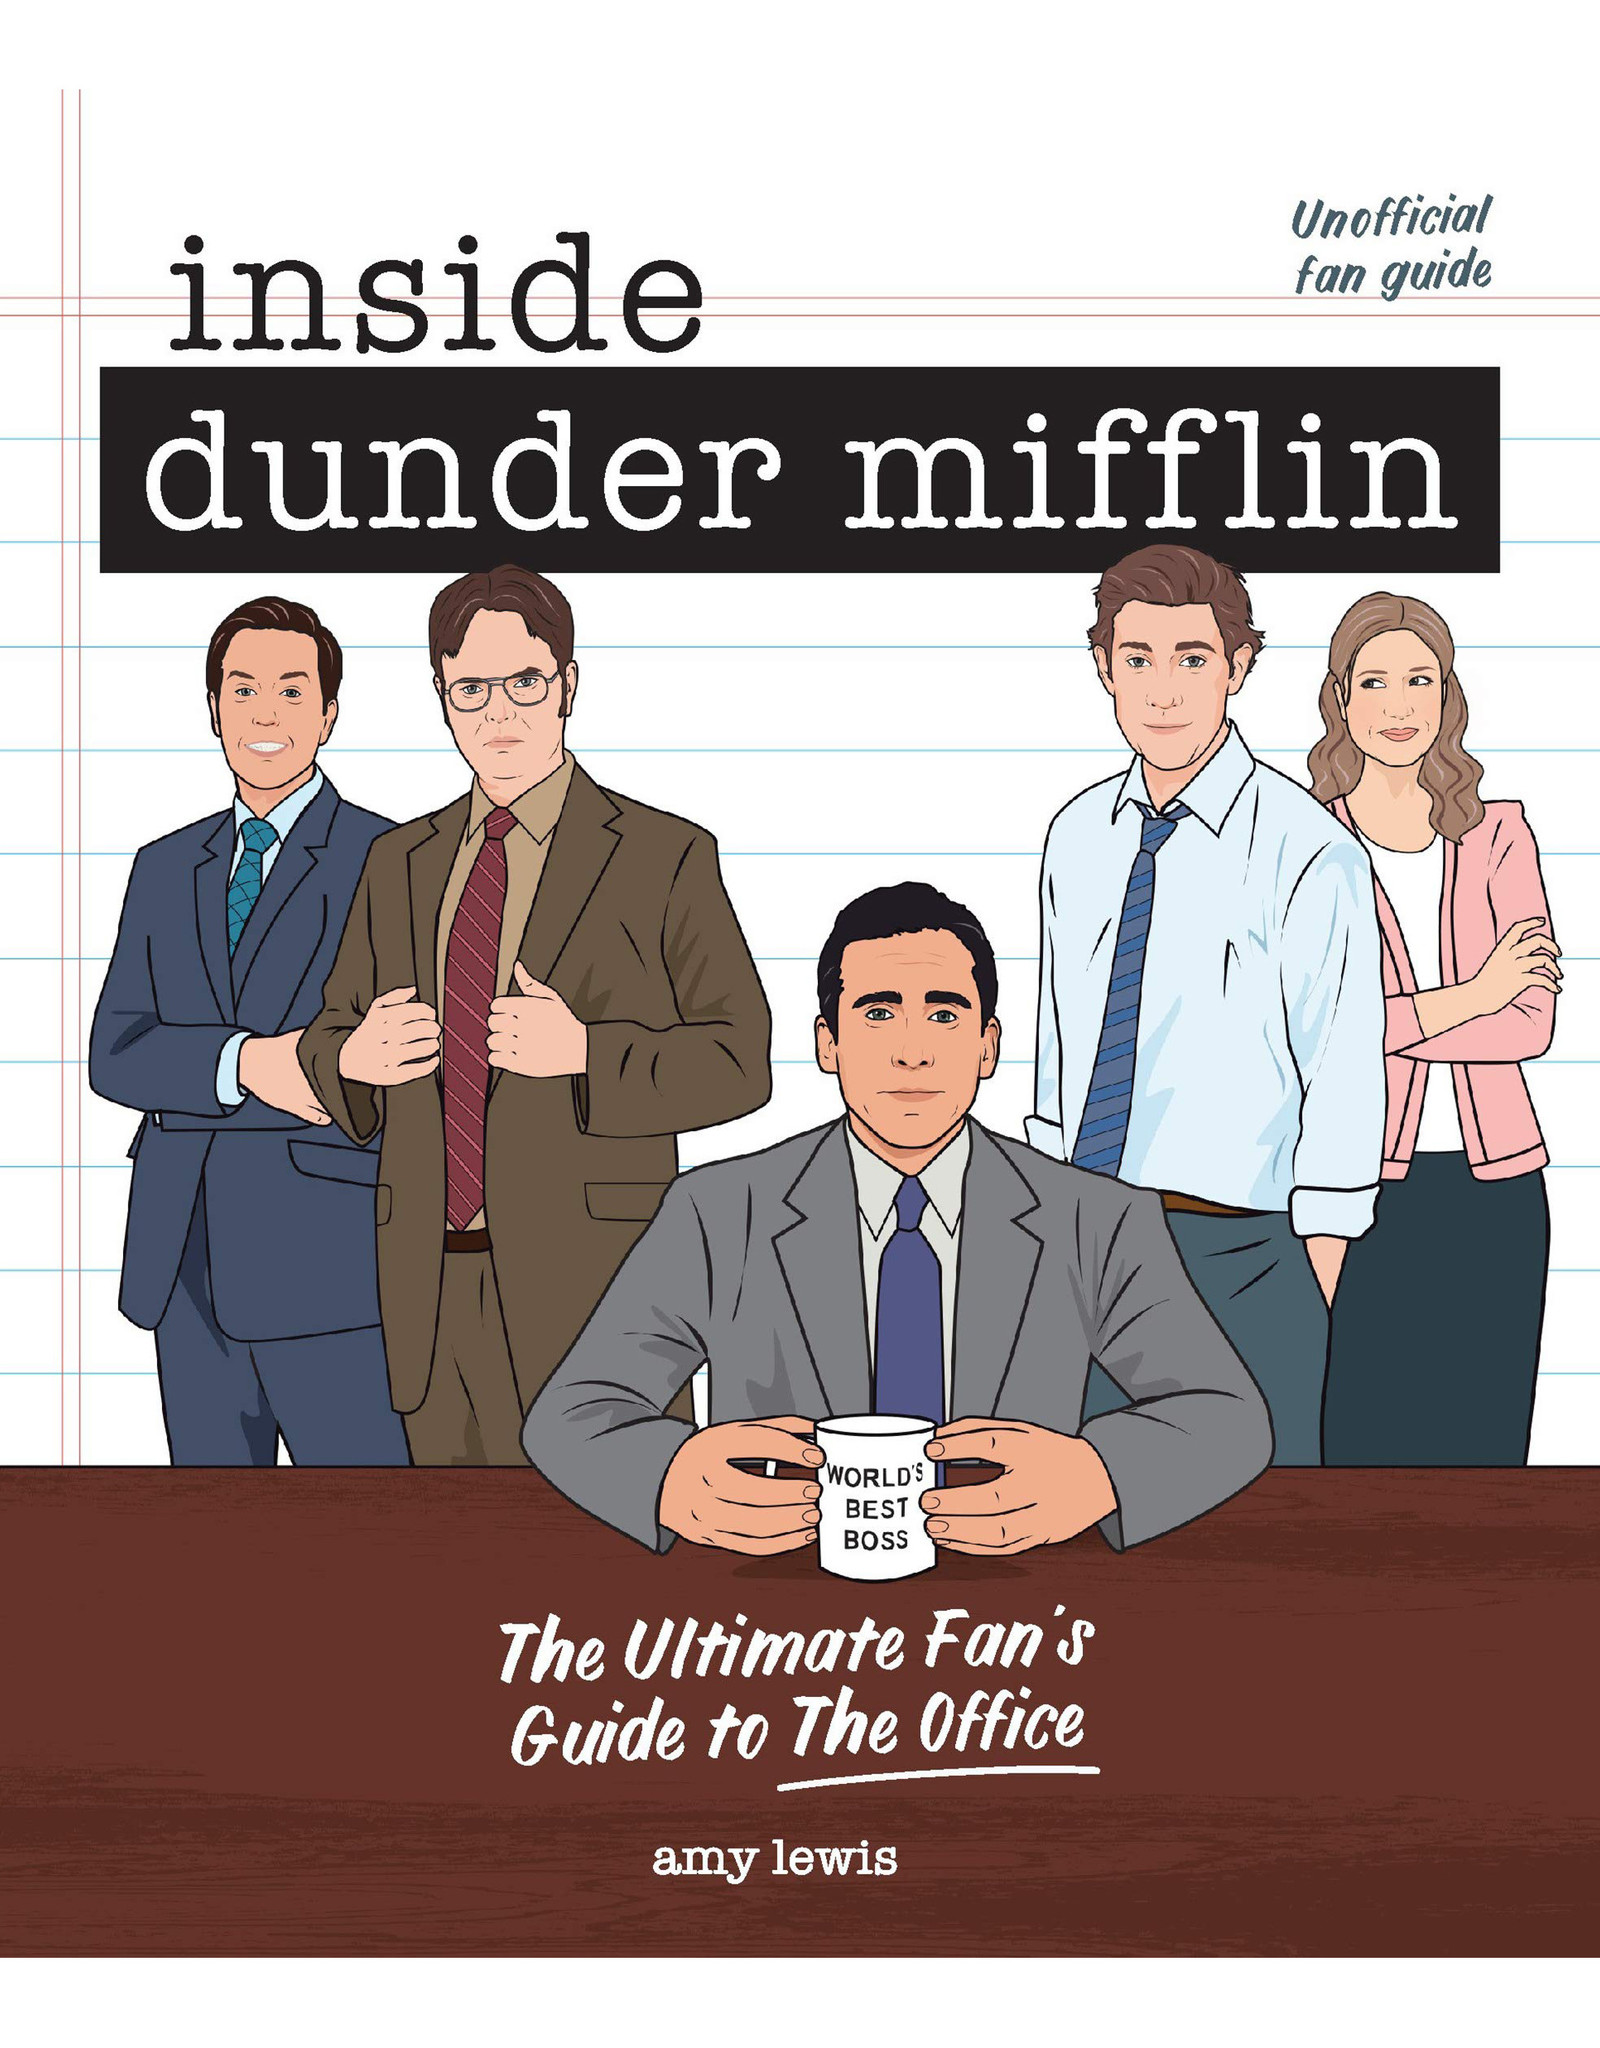 Inside Dunder Mifflin: The Ultimate Fan's Guide to The Office